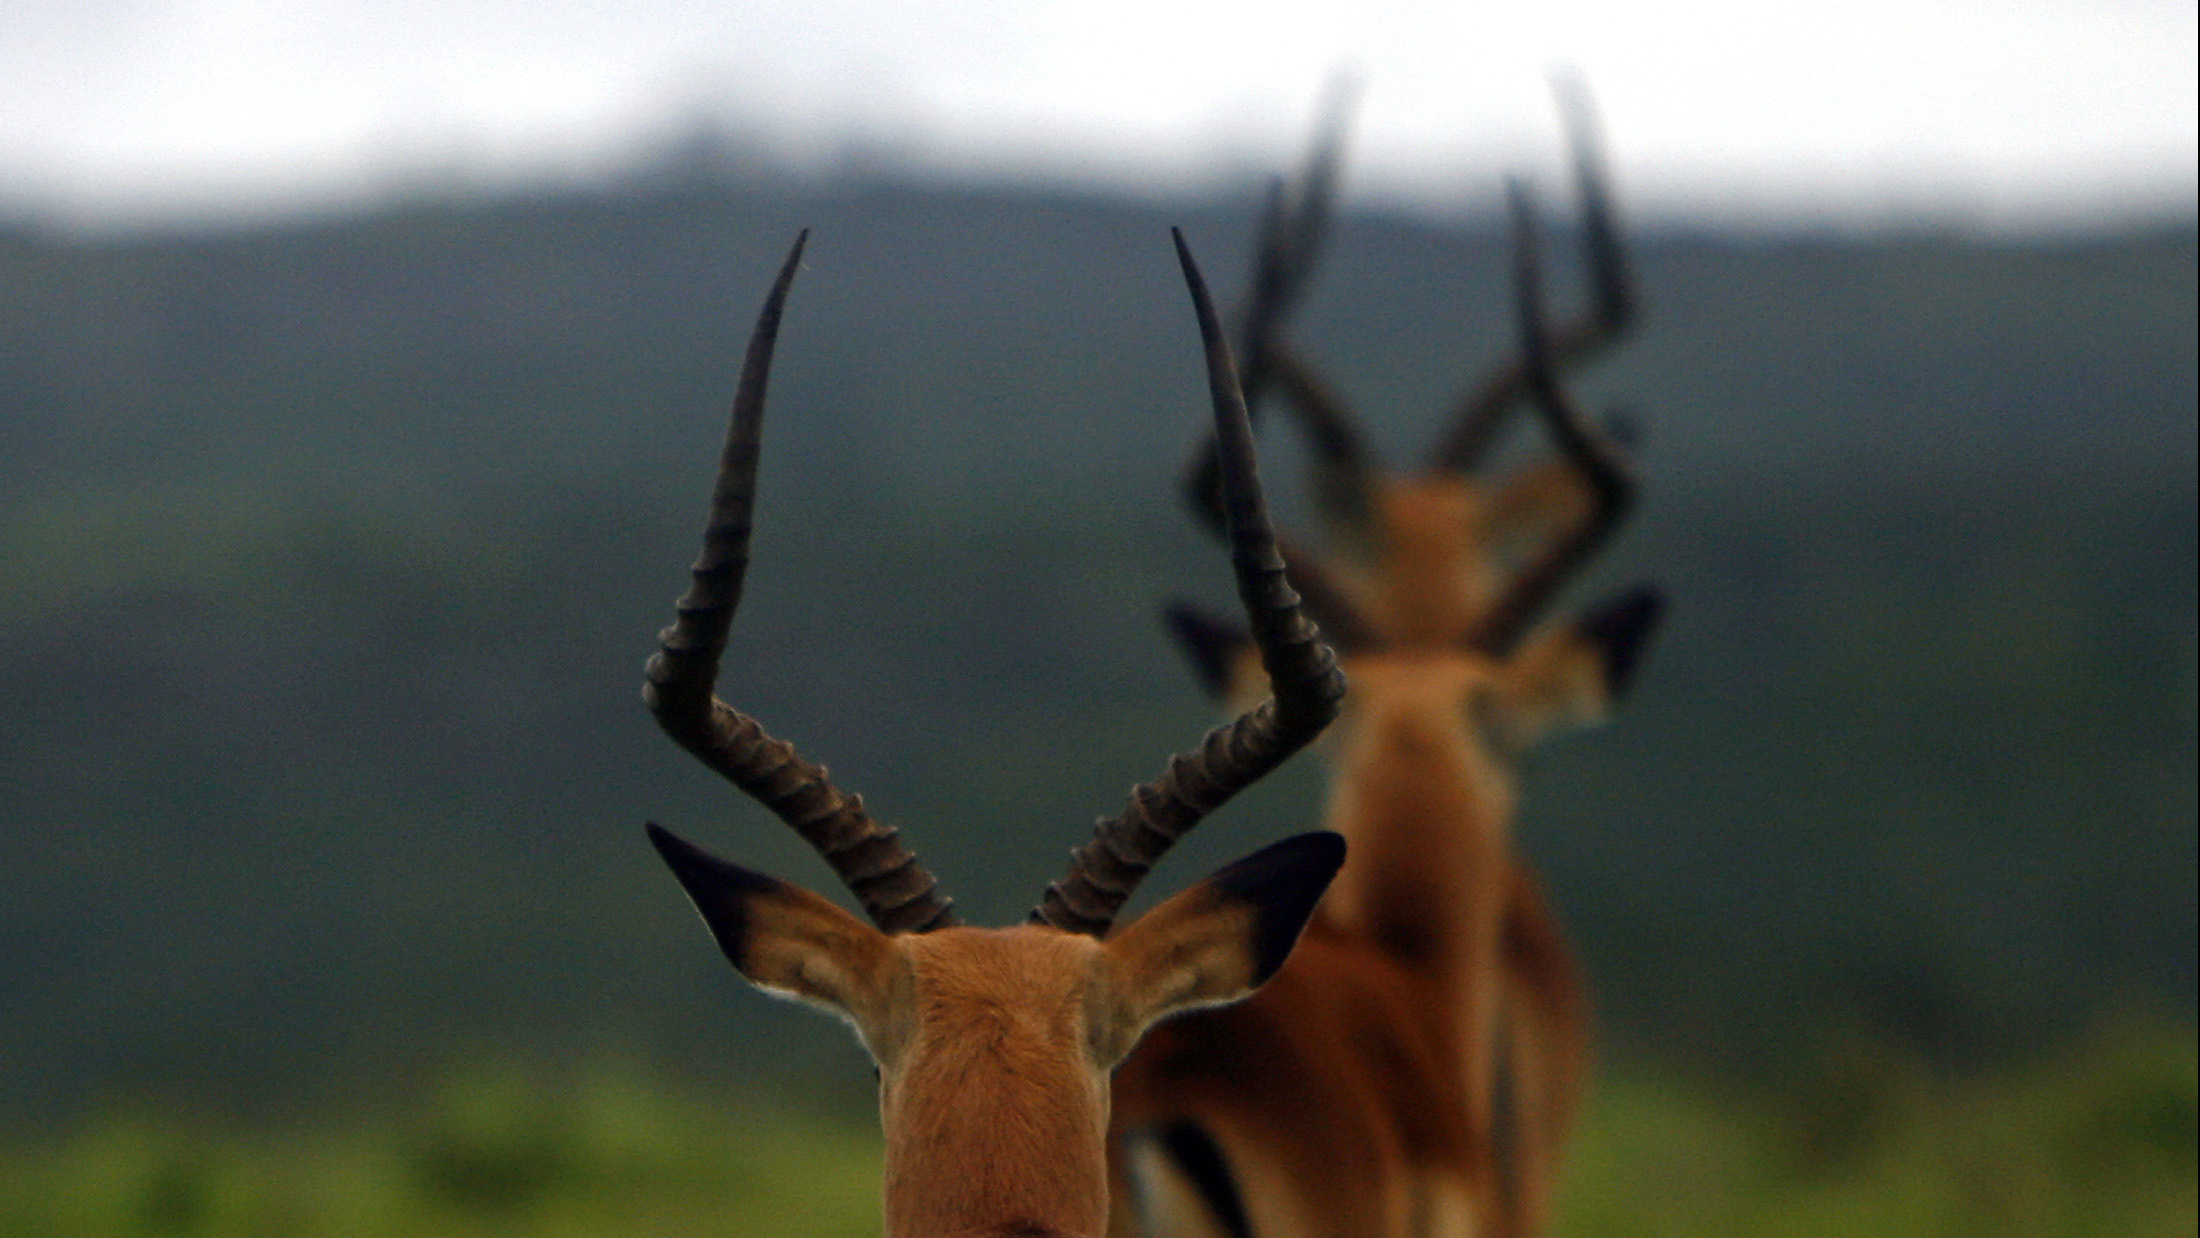 Three Impala antelopes walk in a line in the Kariega Game Reserve east of Port Elizabeth. Picture taken January 4, 2008. REUTERS/Alex Grimm (SOUTH AFRICA) - RTR1VR81